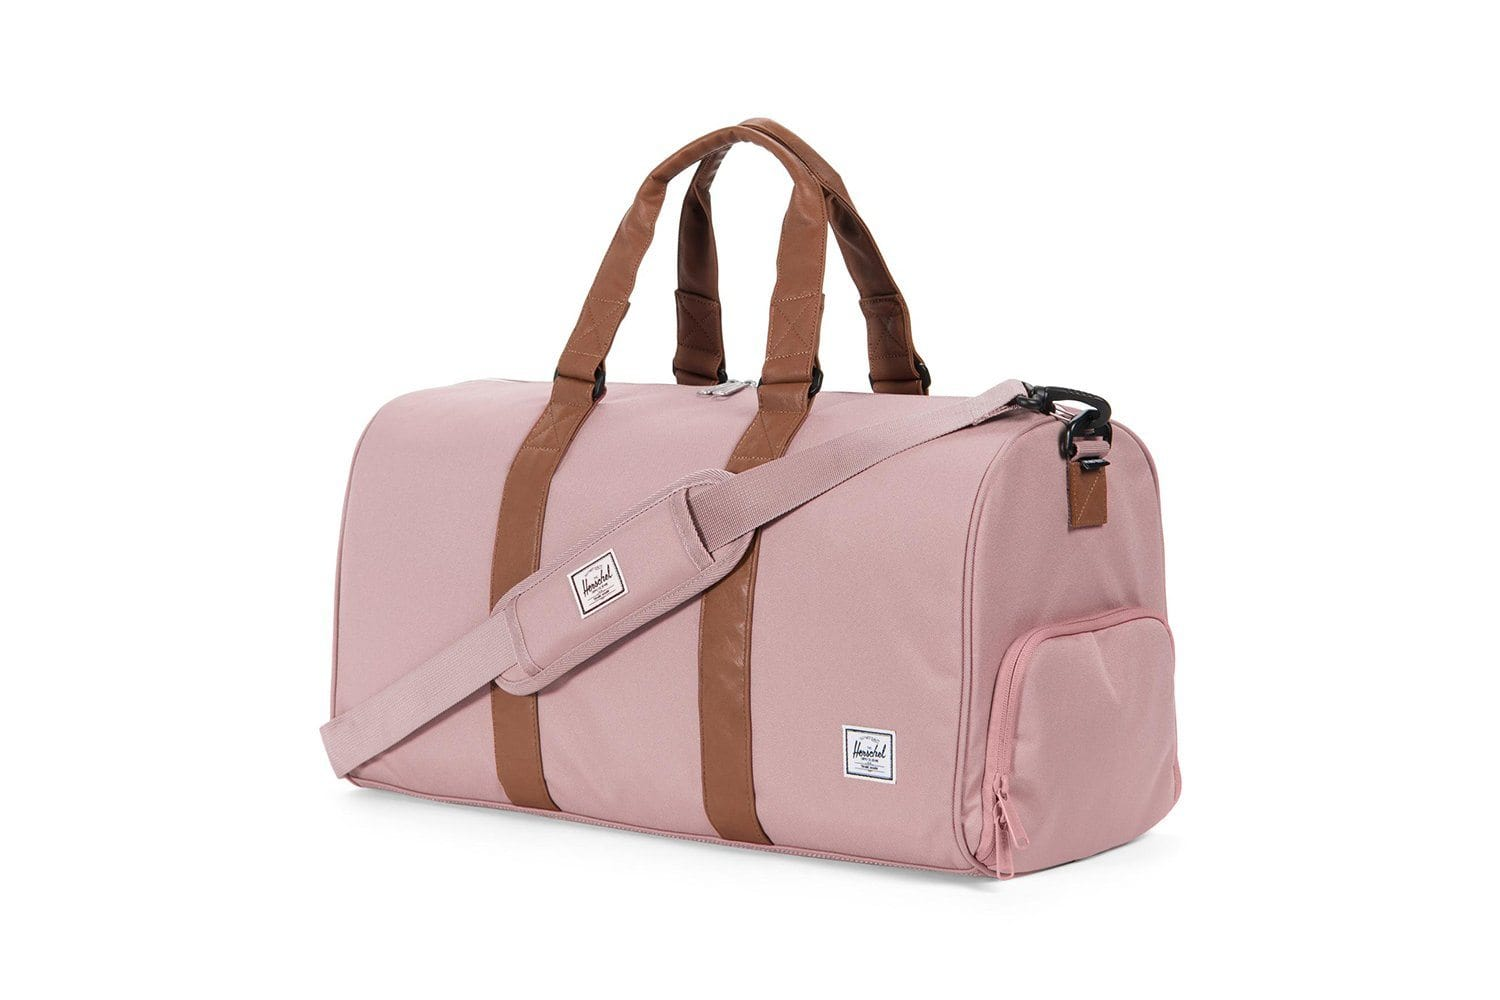 NOVEL MID VOLUME - 10351-02077 BAGS HERSCHEL